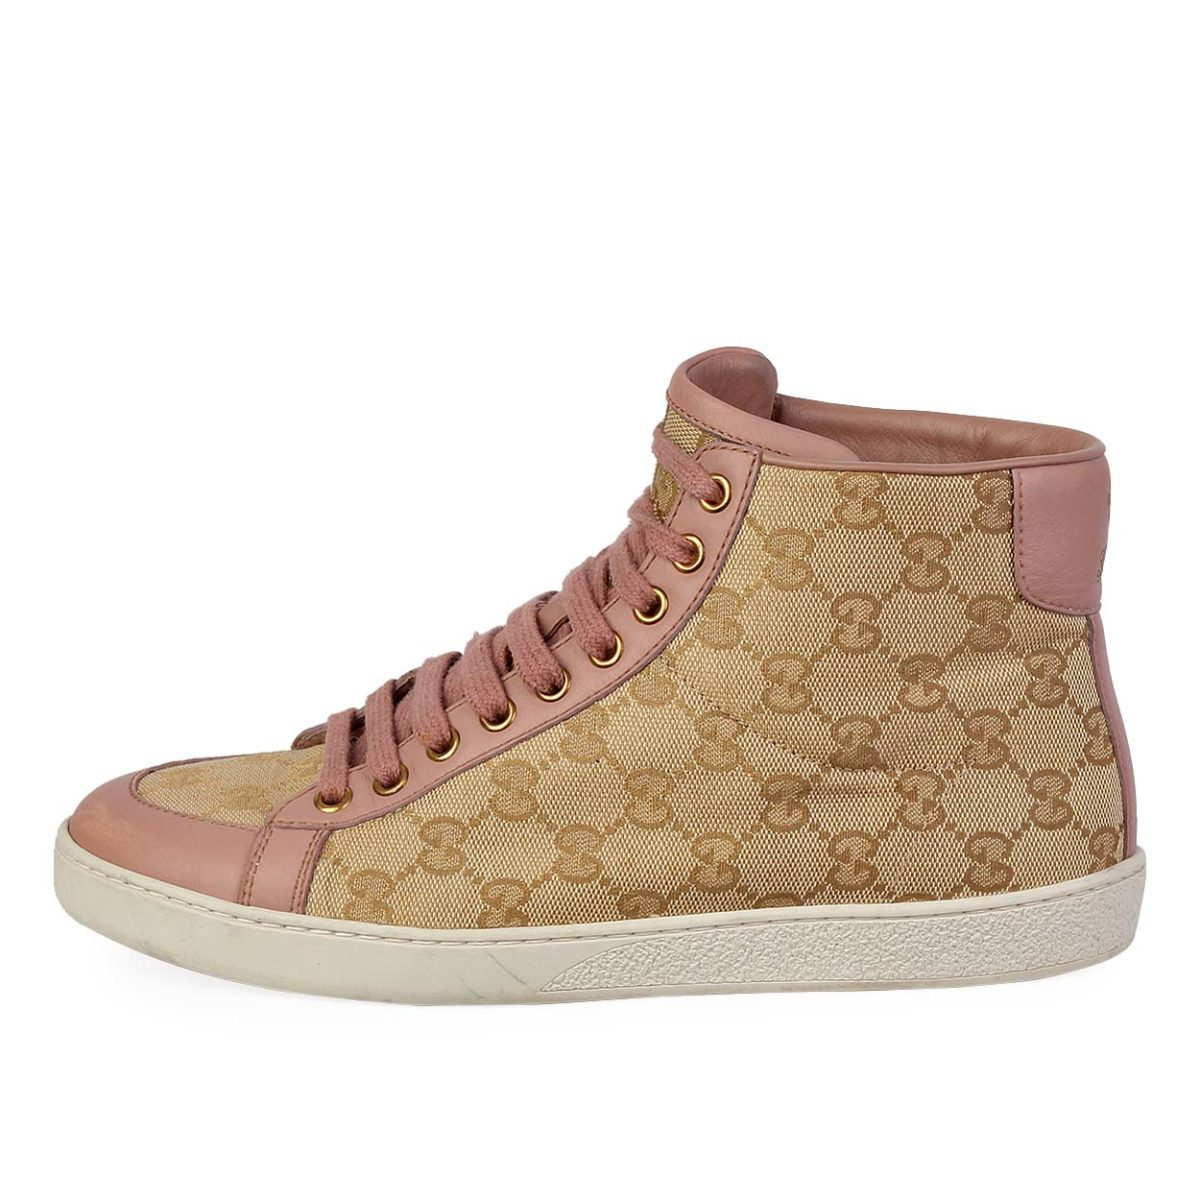 a3a4974f4aa GUCCI GG Brooklyn High-Top Sneakers Pink - S  38 (5)